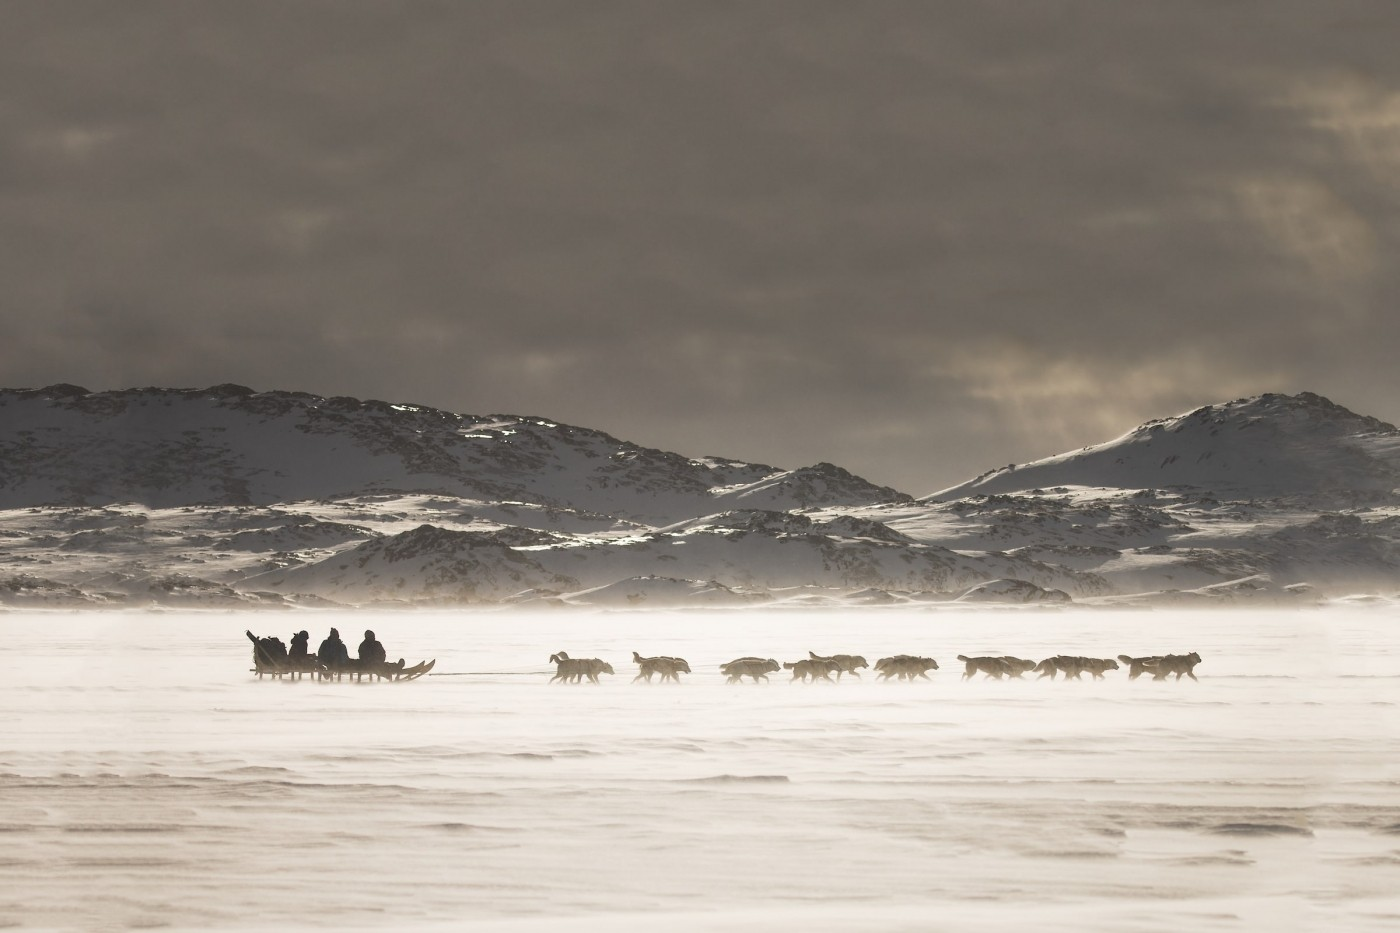 Snow drifting past a dog sled near Tasiilaq in East Greenland. Photo by Mads Pihl - Visit Greenland